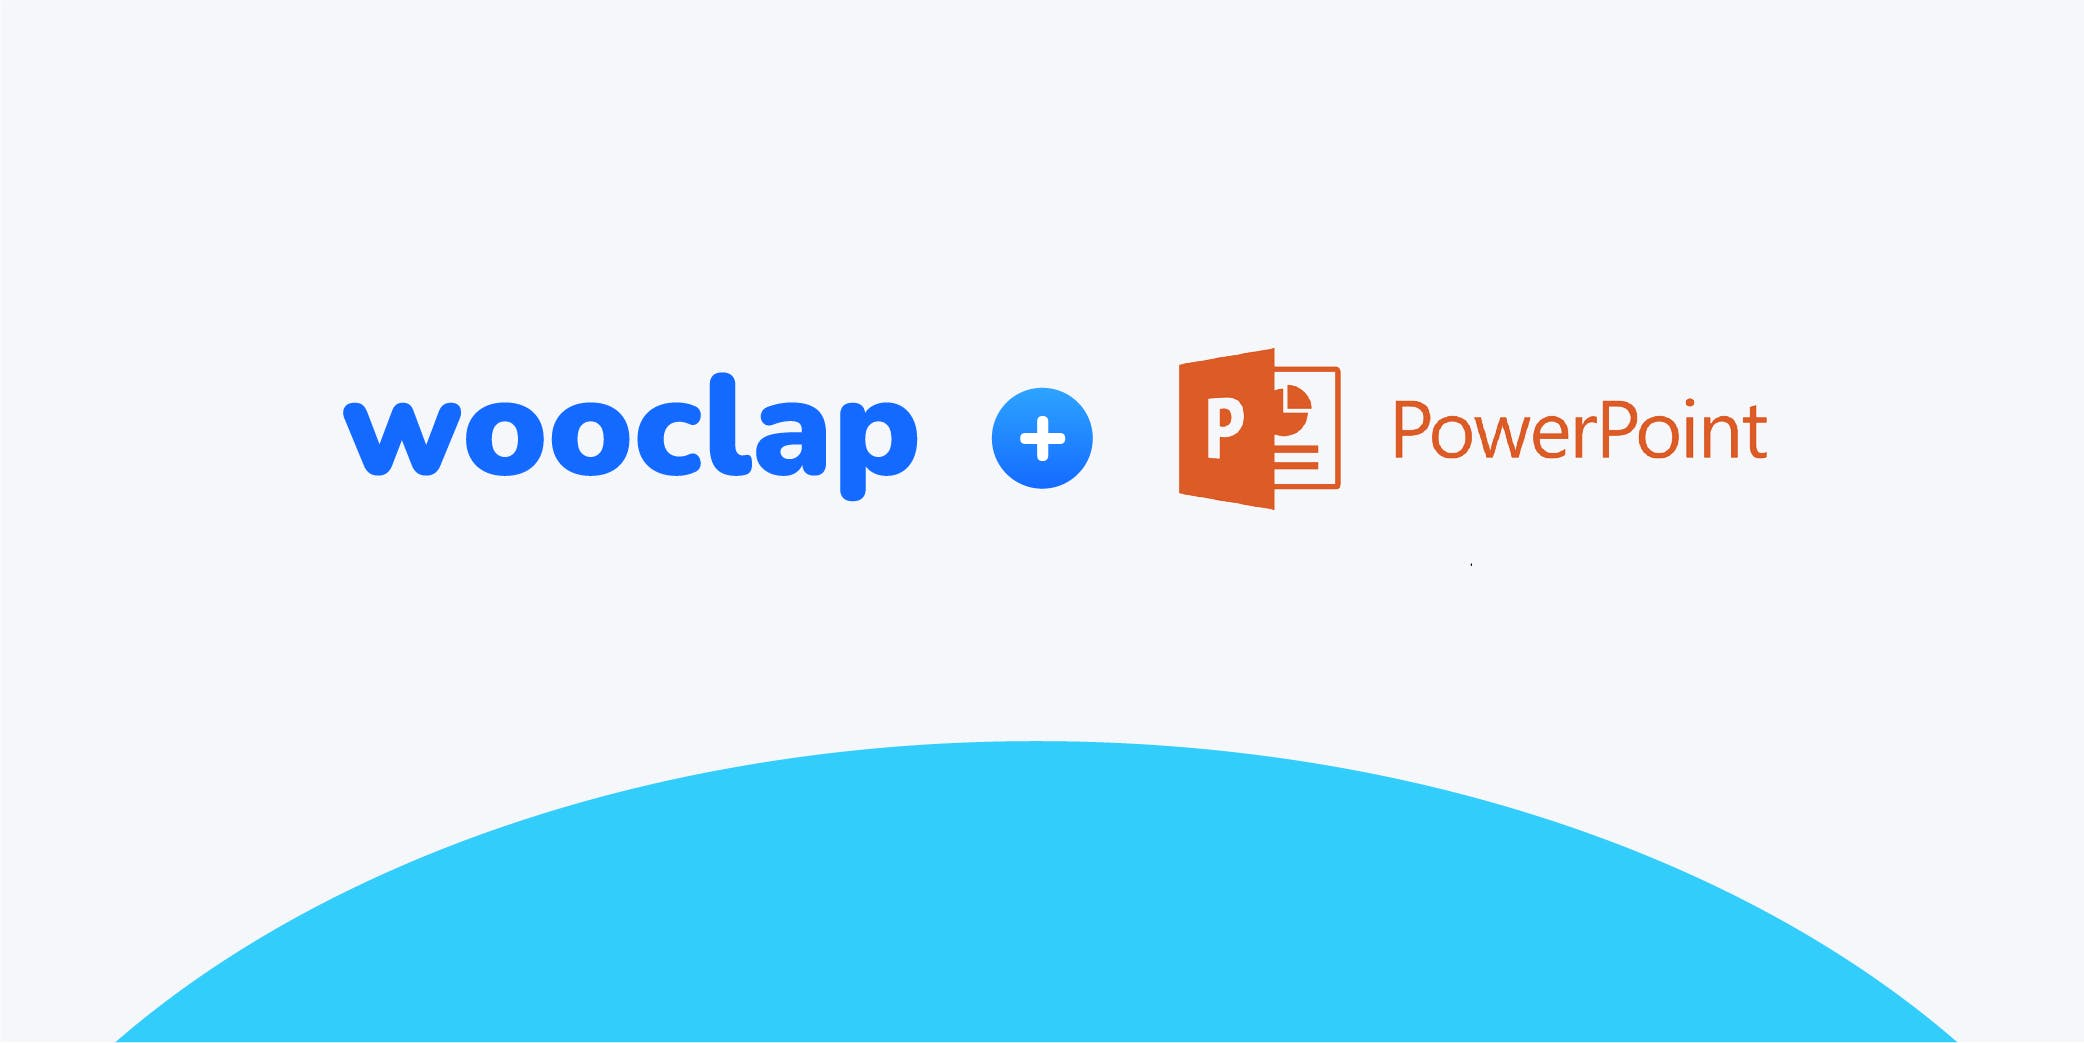 Wooclap and PowerPoint